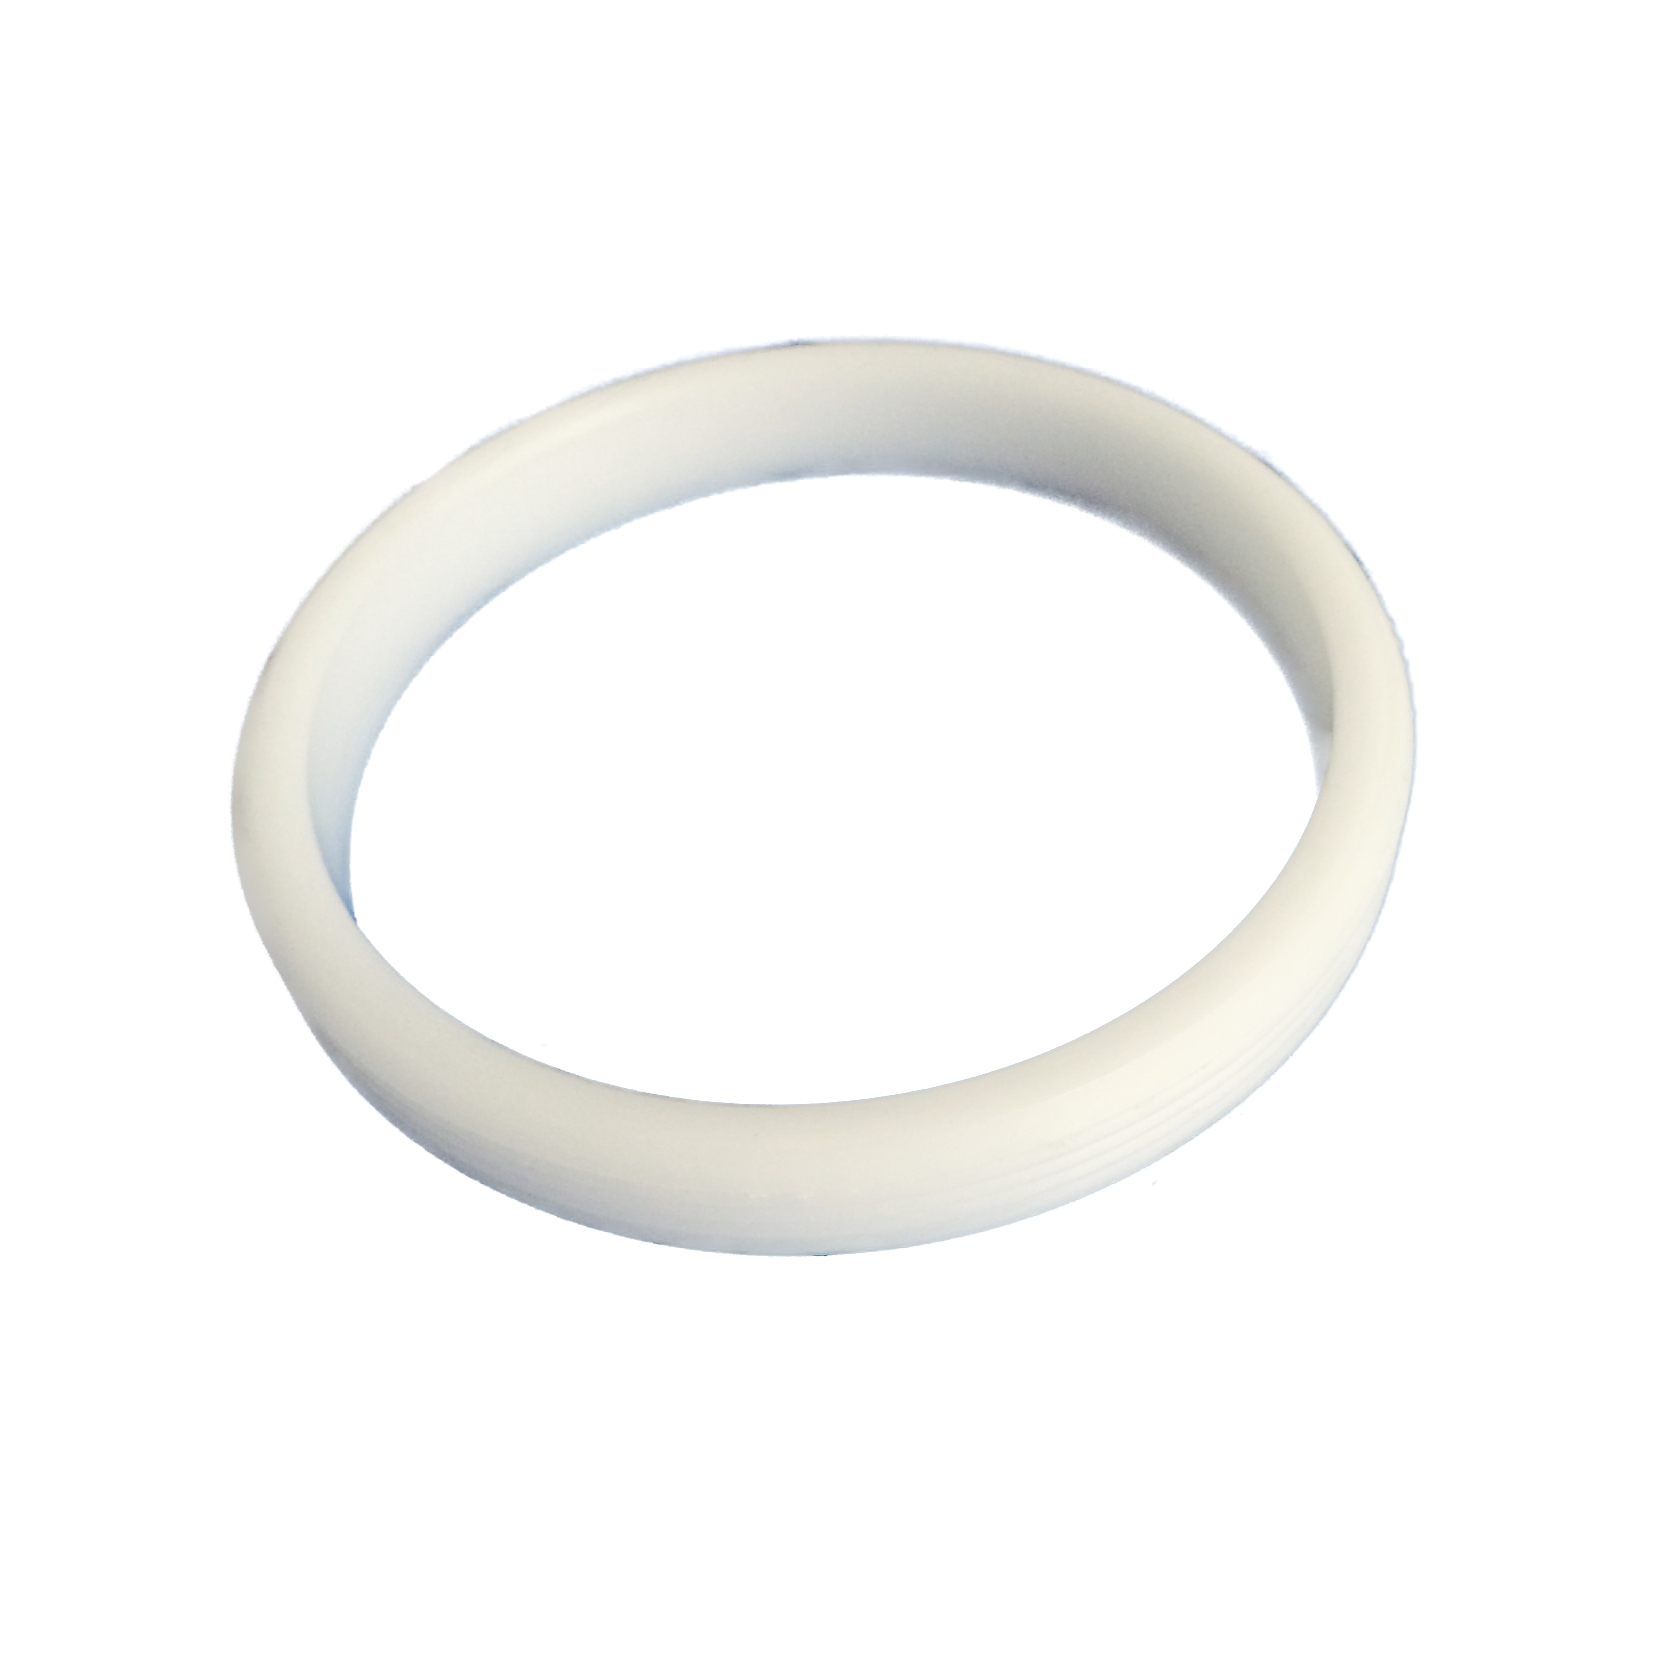 Vlv Seat Ring, AGM, SV410033 for sale